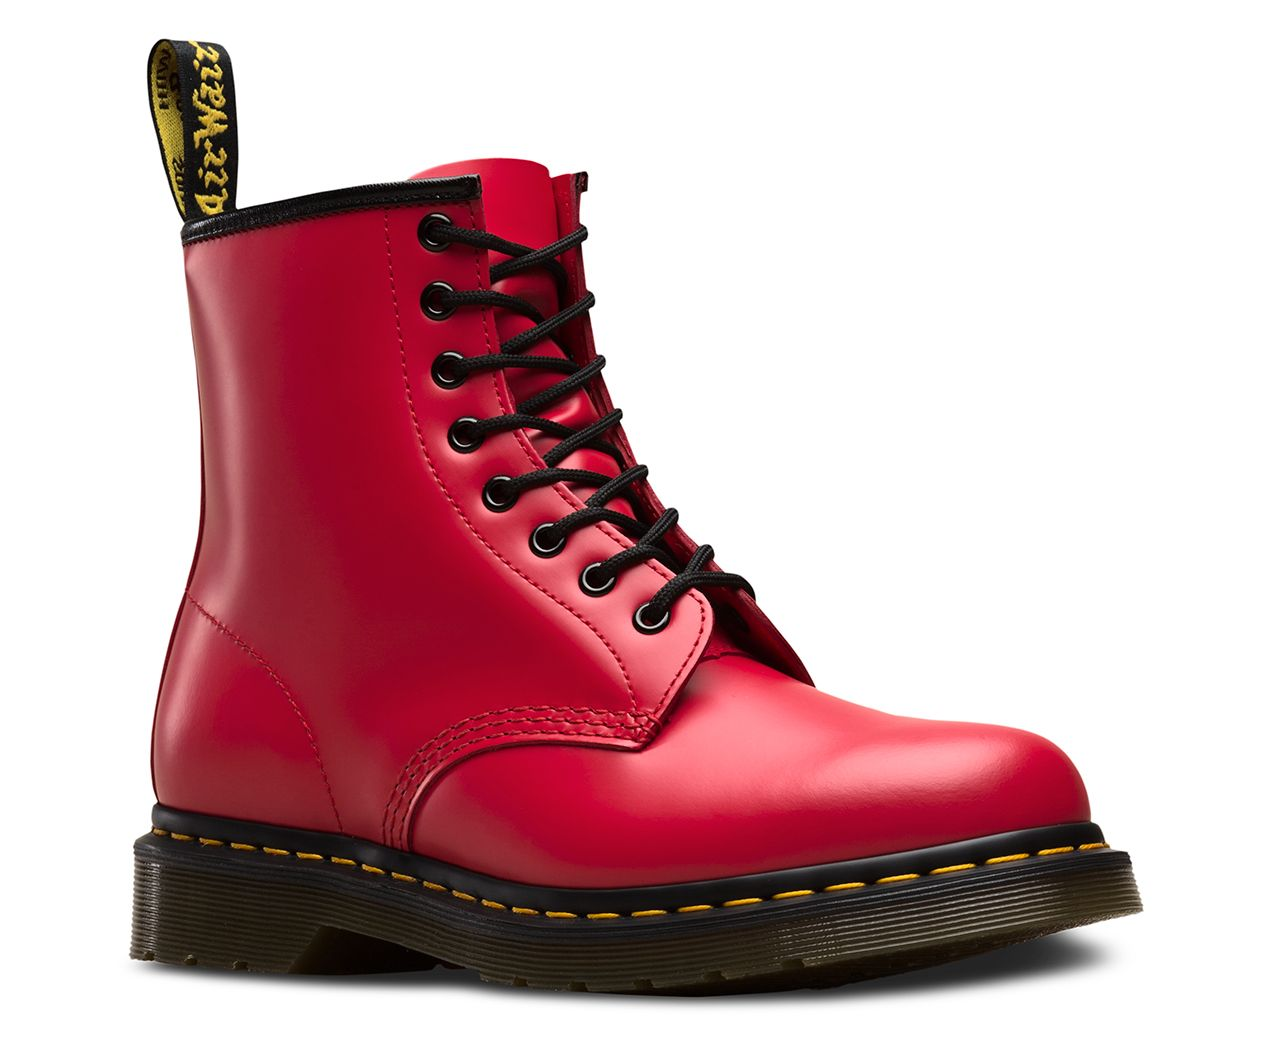 Dr Martens 1460 Smooth Leather Ankle Boots Boots Leather Lace Up Boots Red Doc Martens